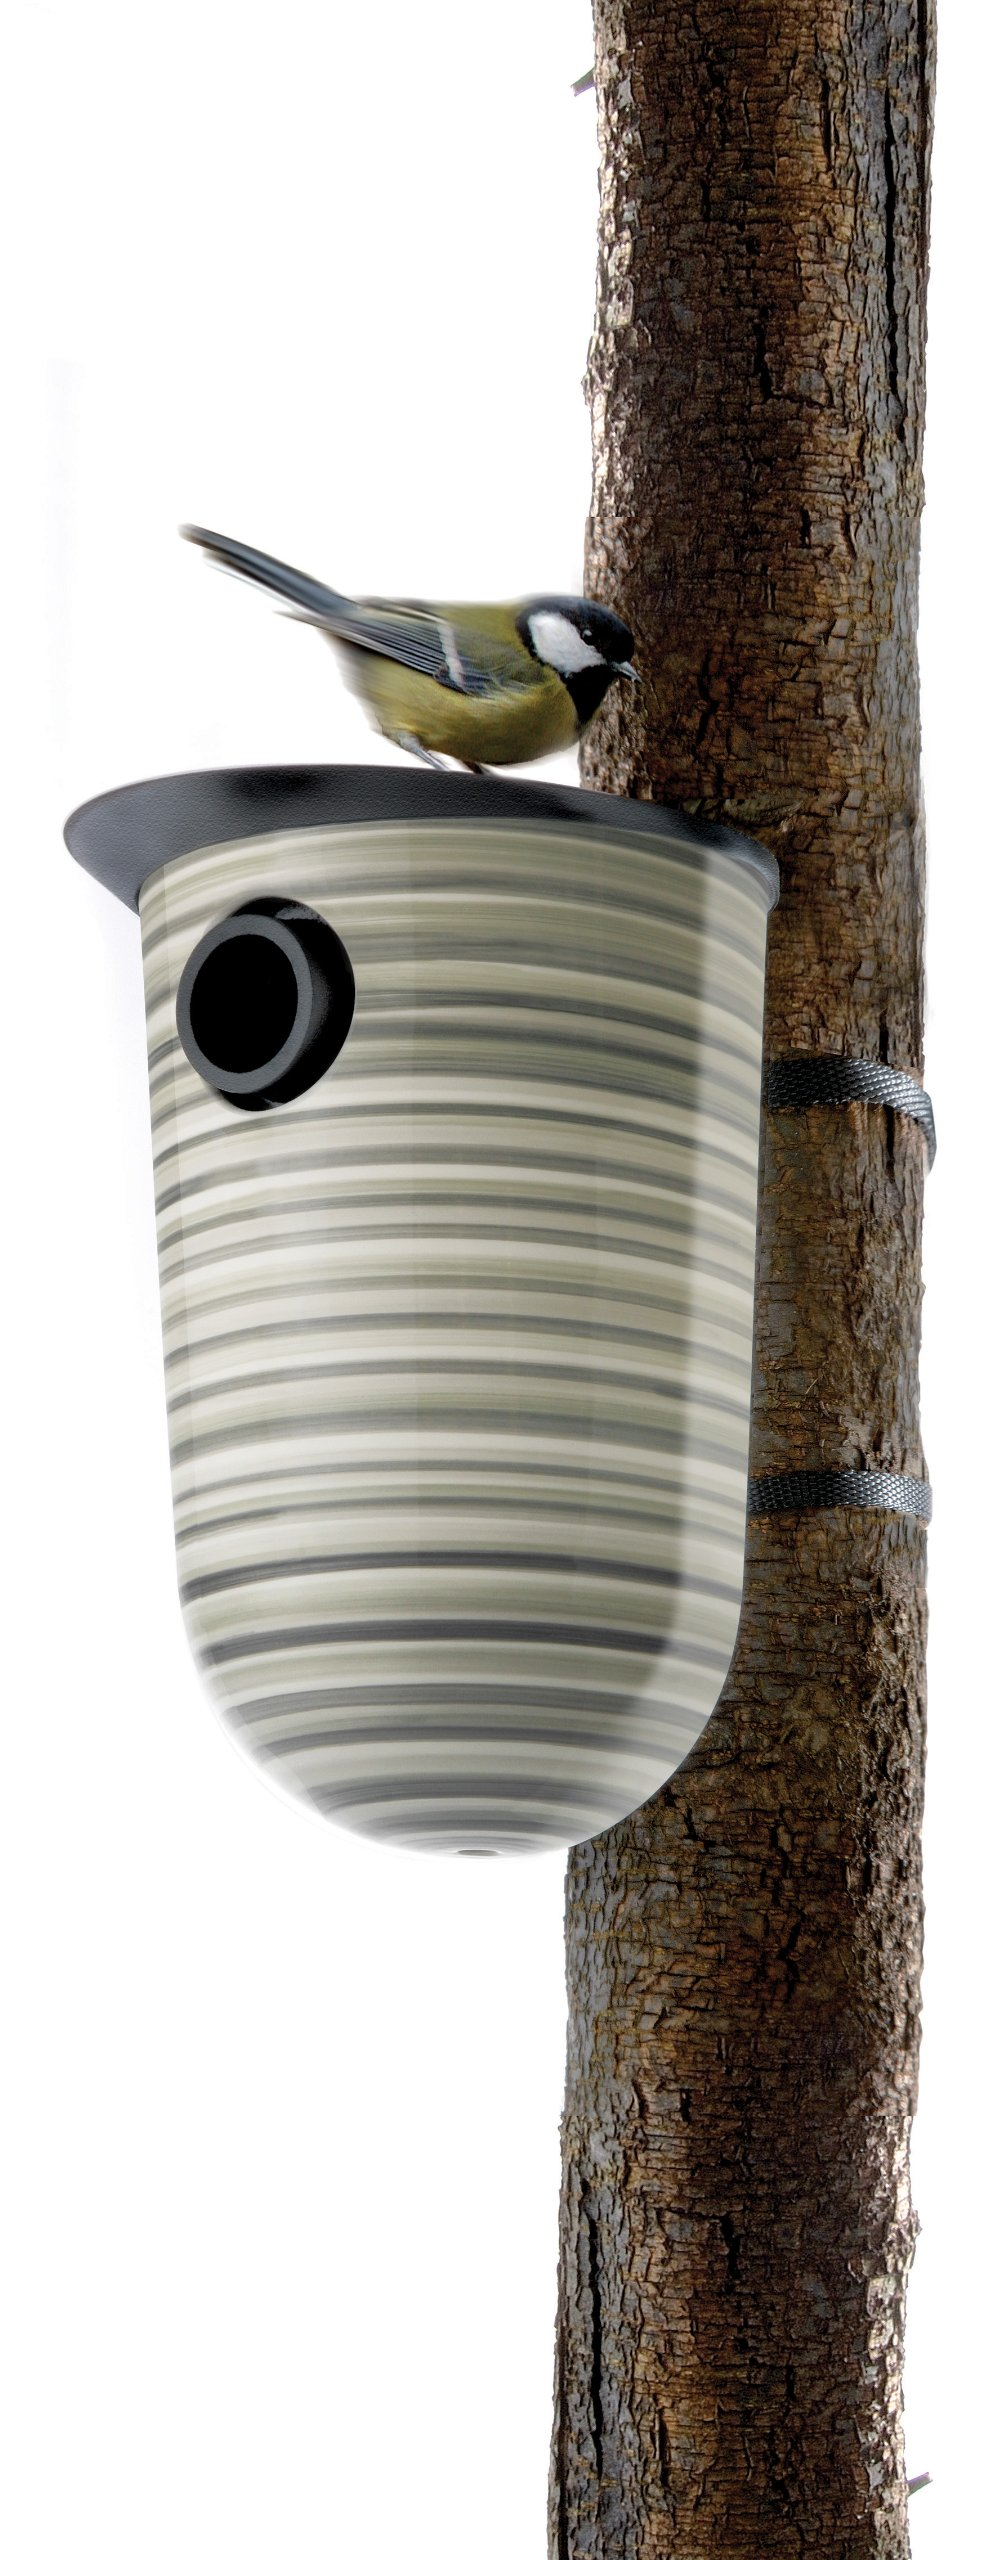 Eva Solo 571140 Bird Nesting Box, Striped